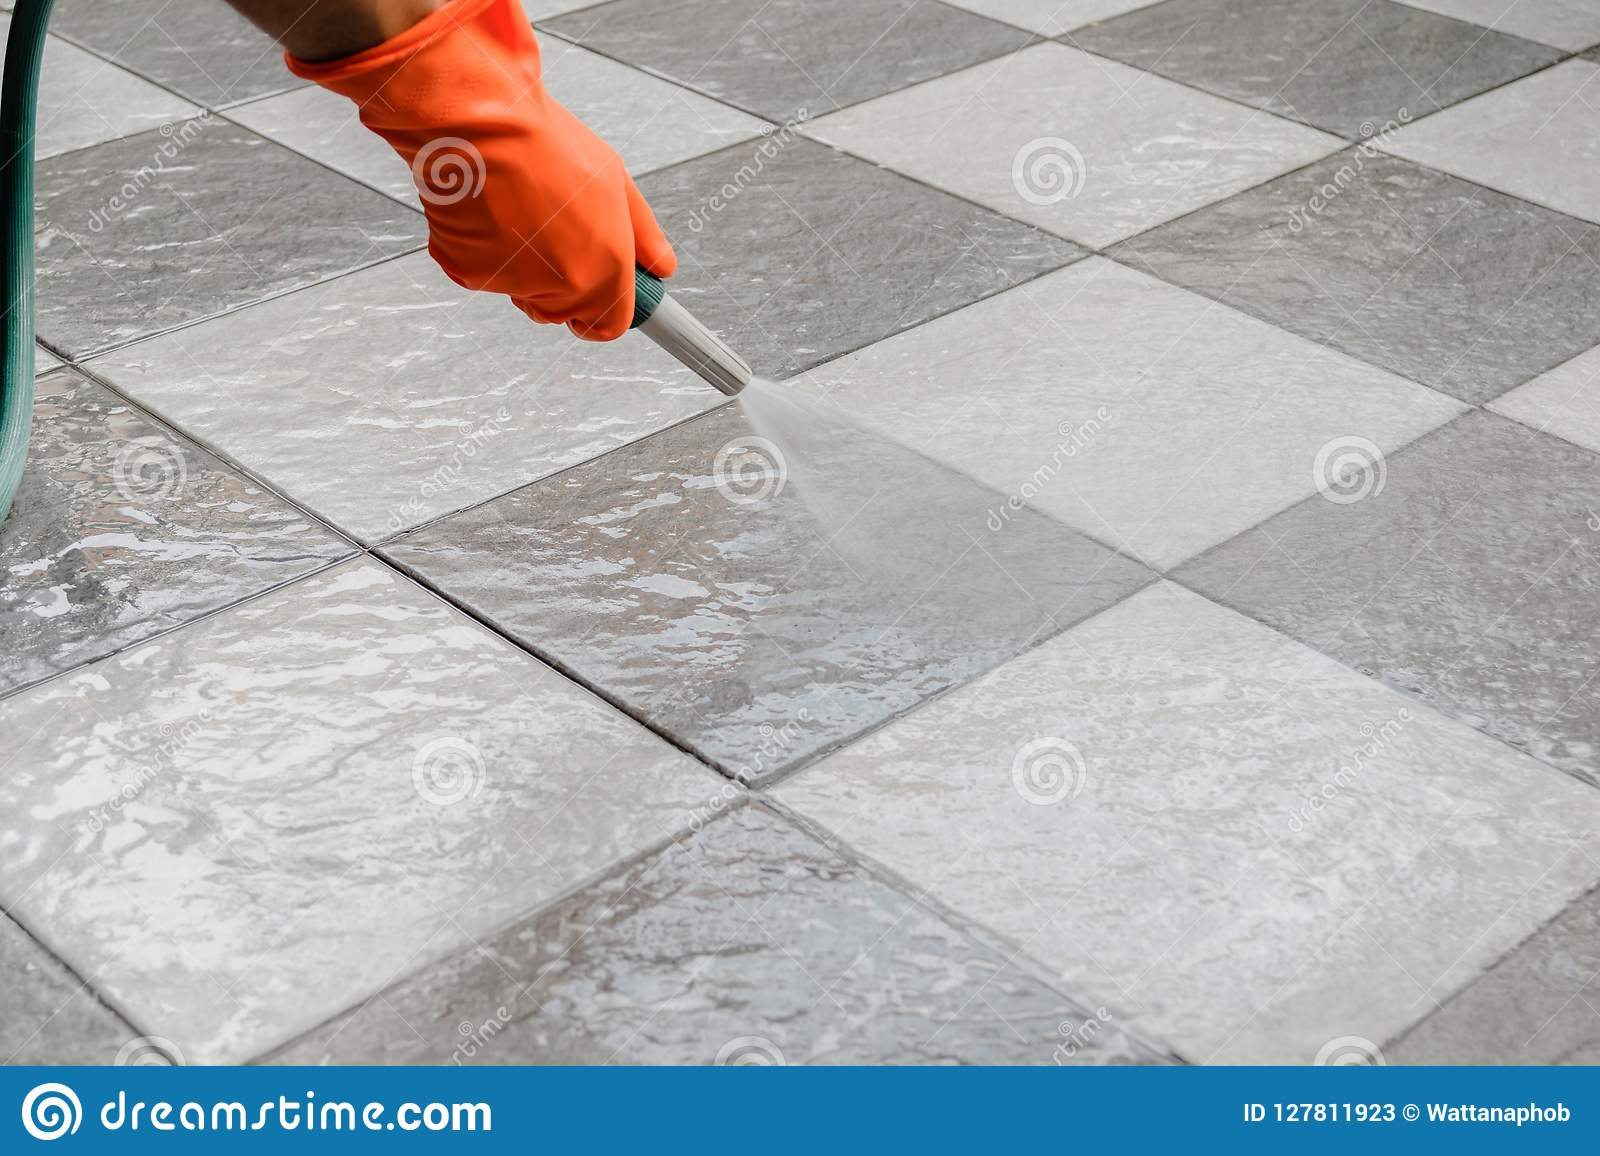 Clean The Floor Stock Image Image Of Concrete Cleaner 127811923